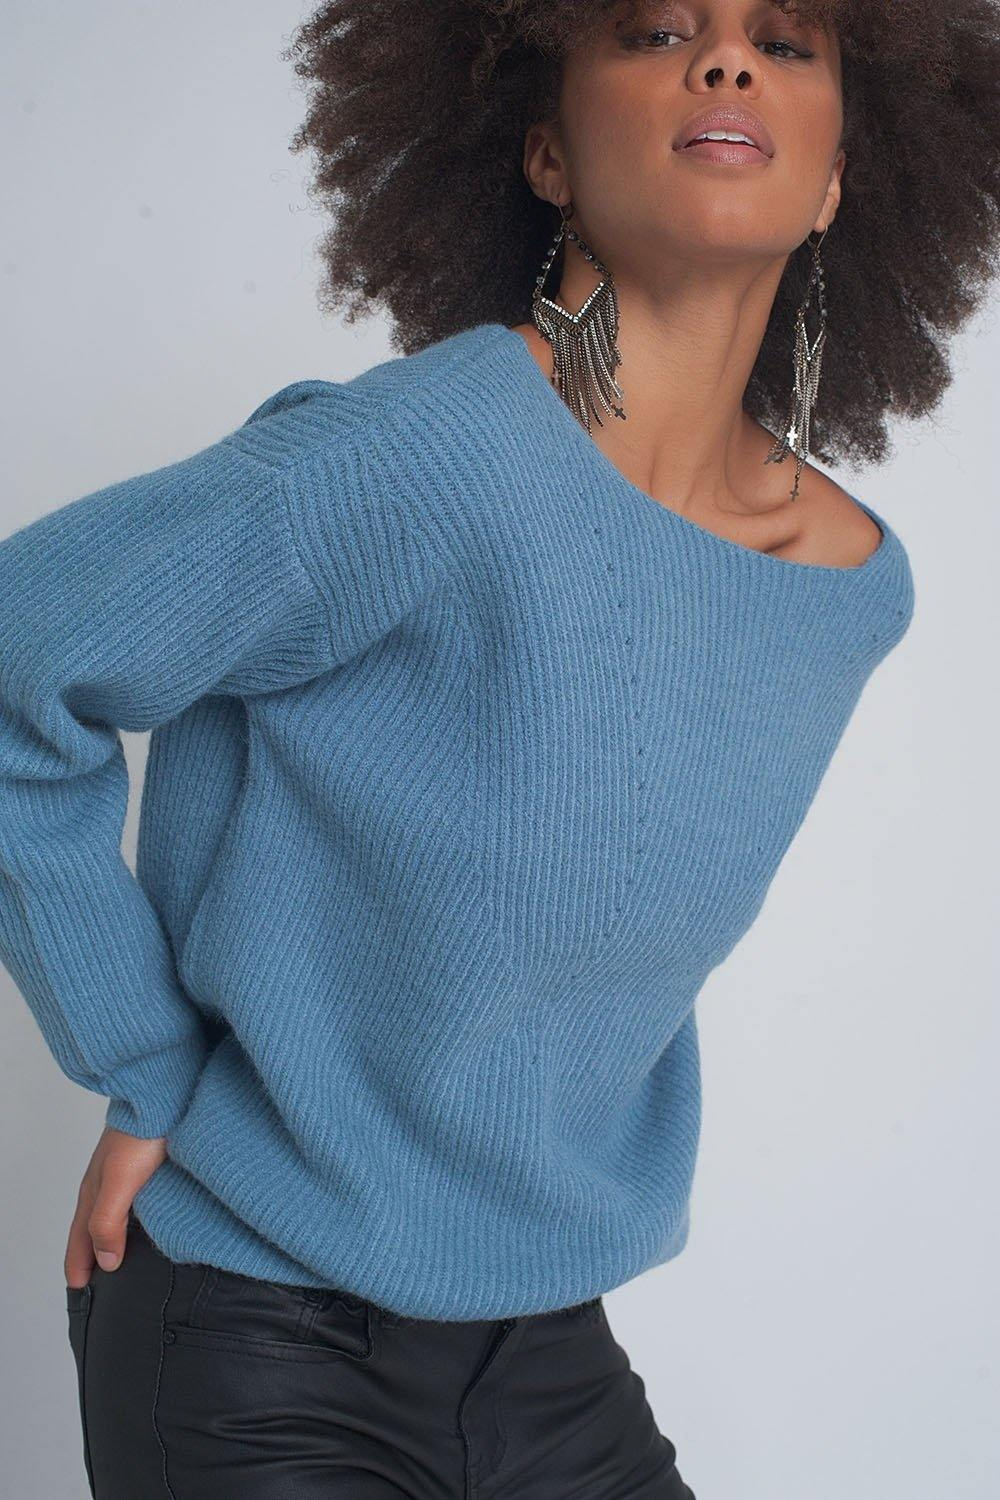 Q2 Textured sweater in blue